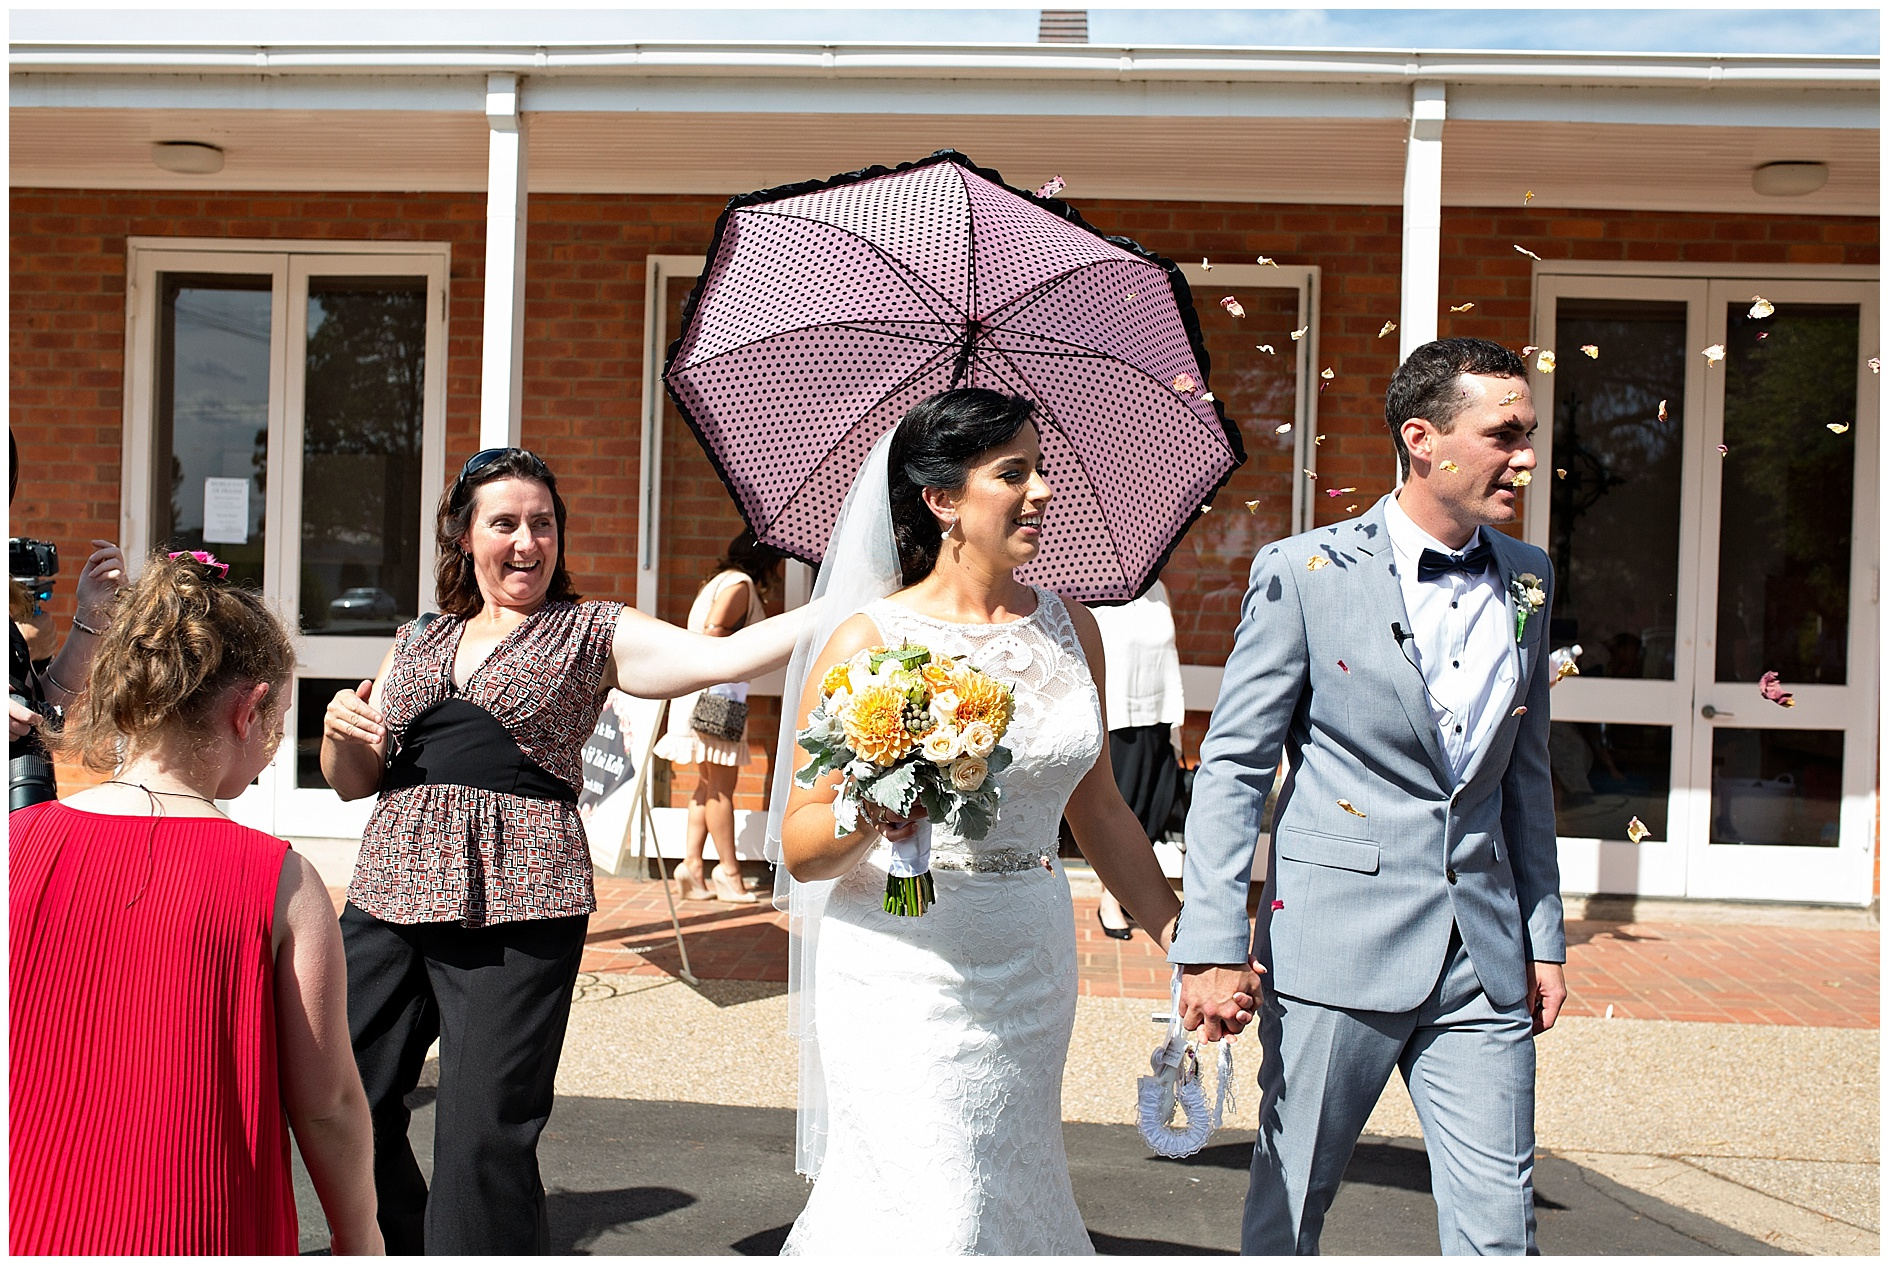 yarrawonga-wedding-photographer_0072.jpg